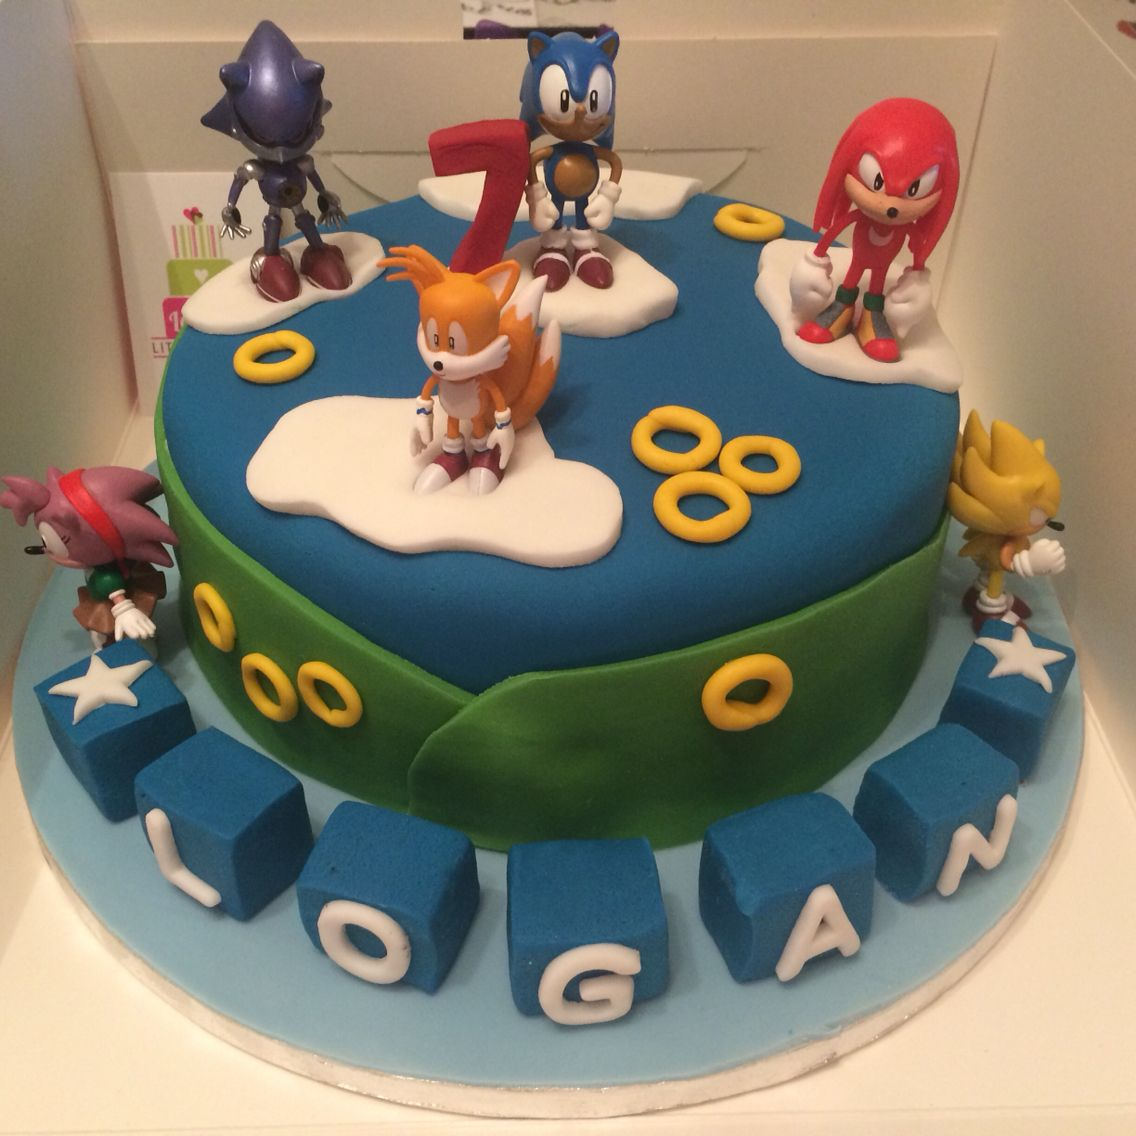 Sonic And Friends Cake Hedgehog Cake Hedgehog Birthday Friends